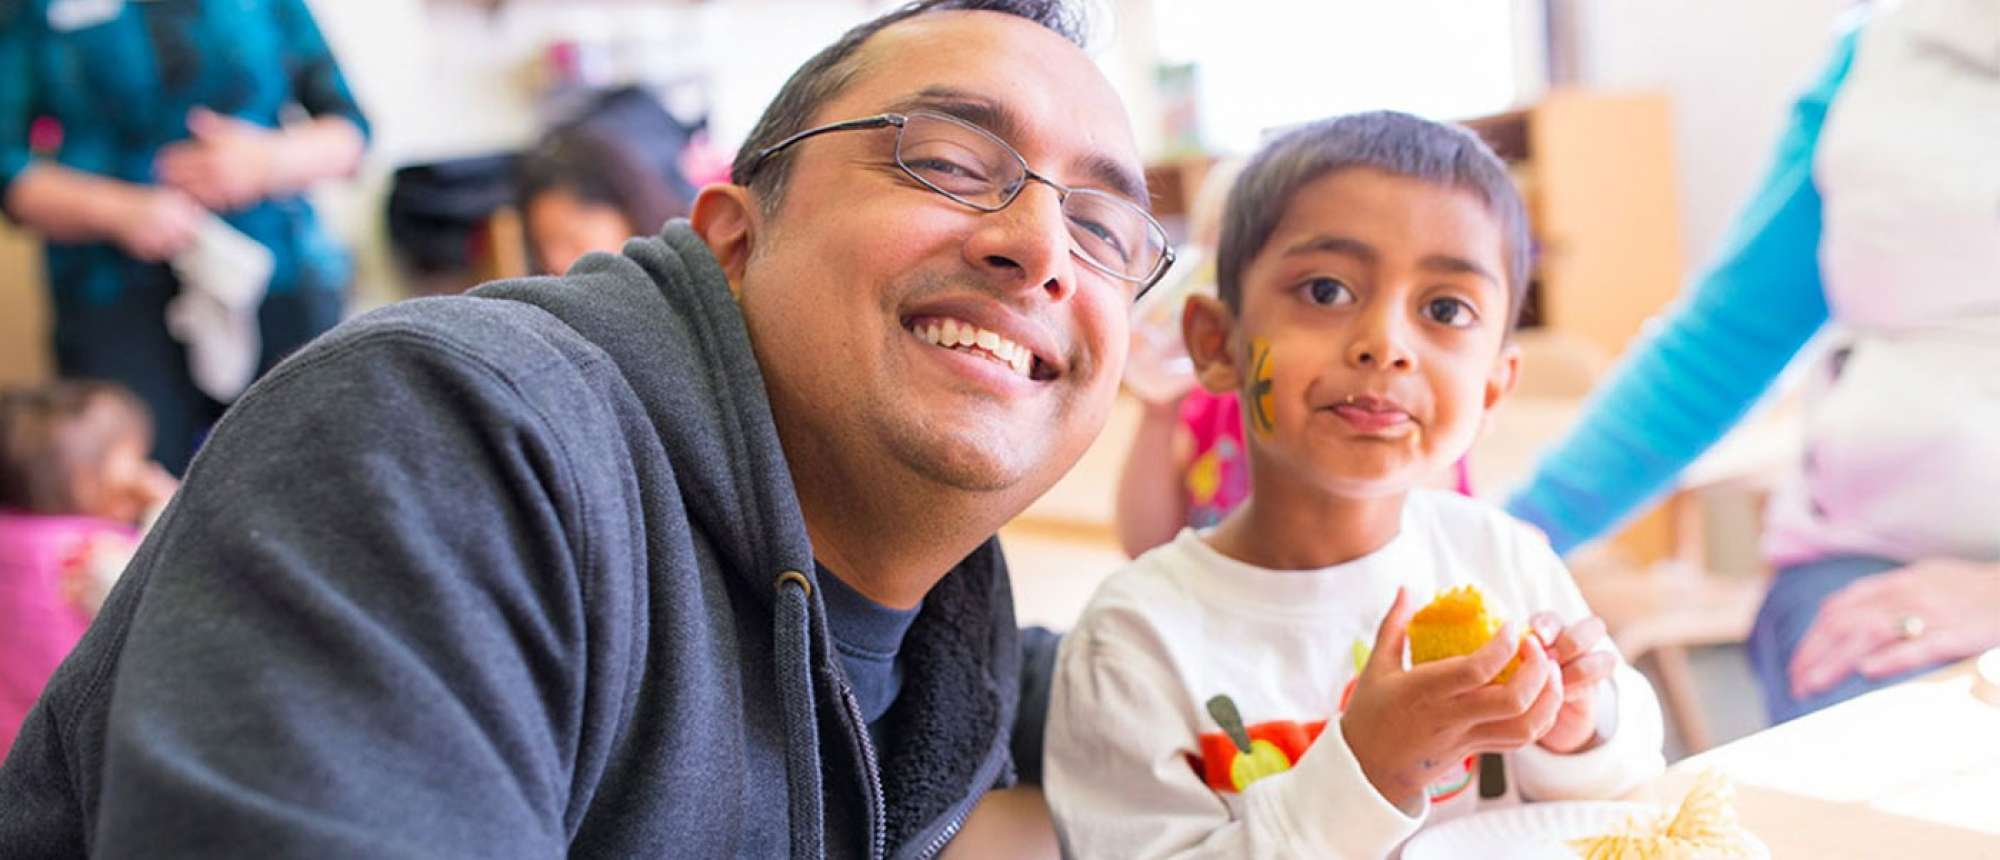 Dad posing with son in the Child Development Center